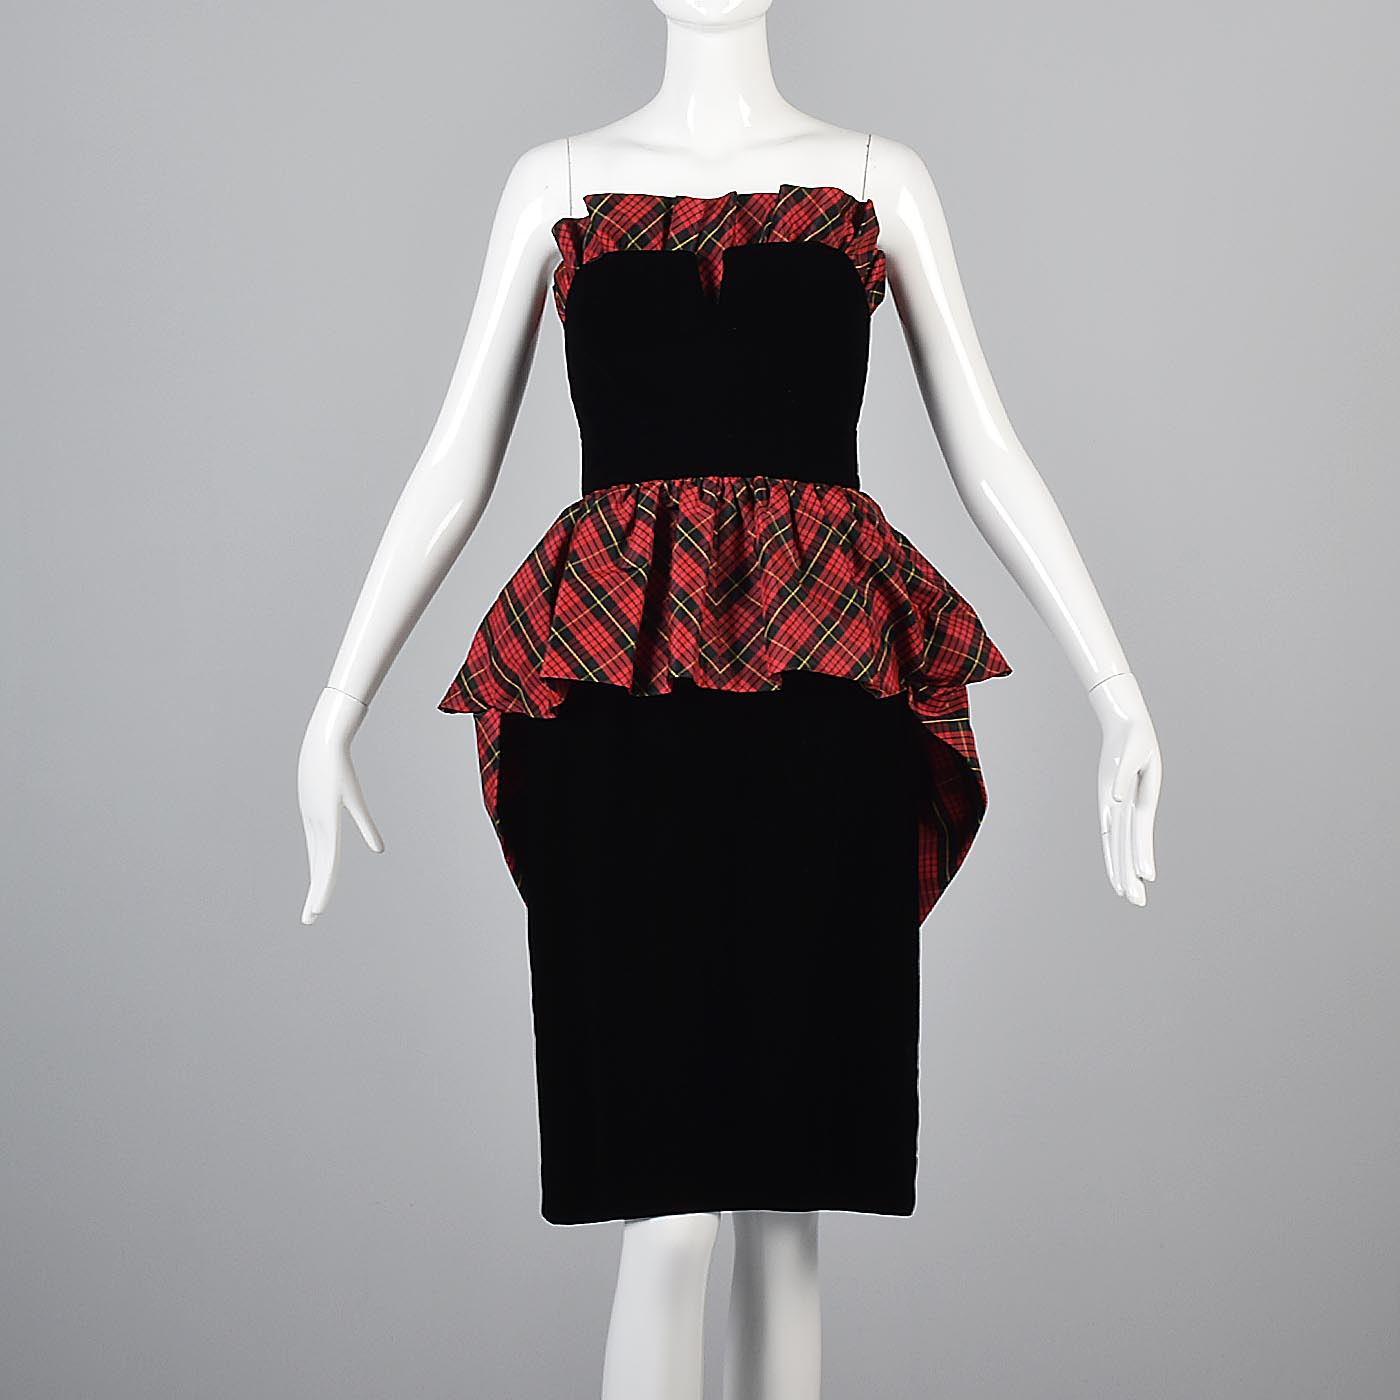 Victor Costa Black Velvet Pencil Dress with Red Tartan Plaid Peplum